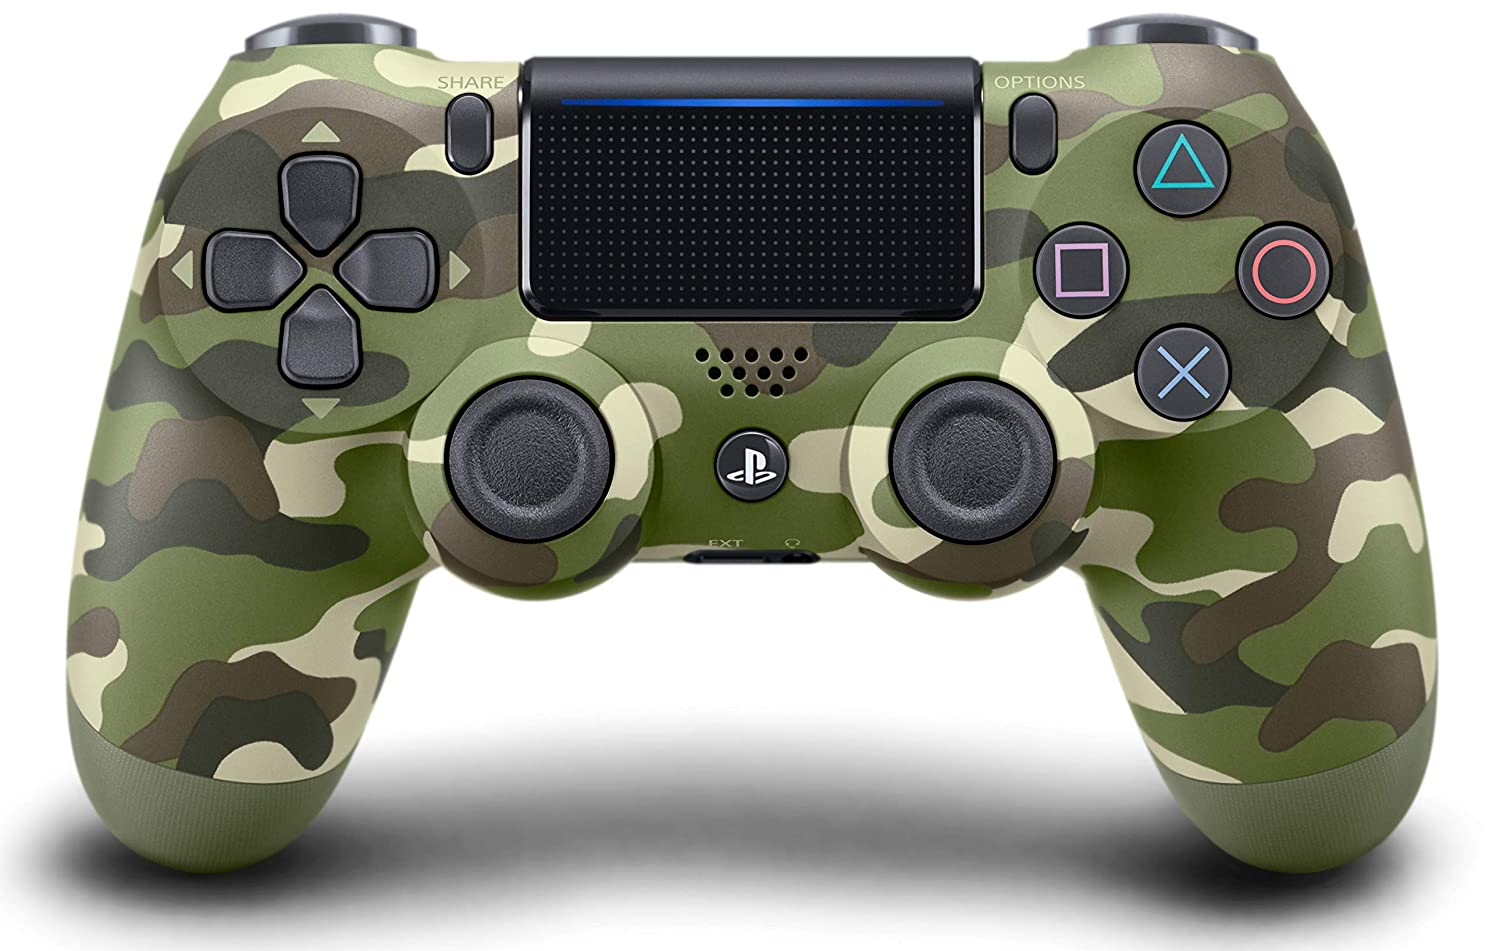 DualShock 4 Wireless Controller for PlayStation 4 -  Green Camouflage